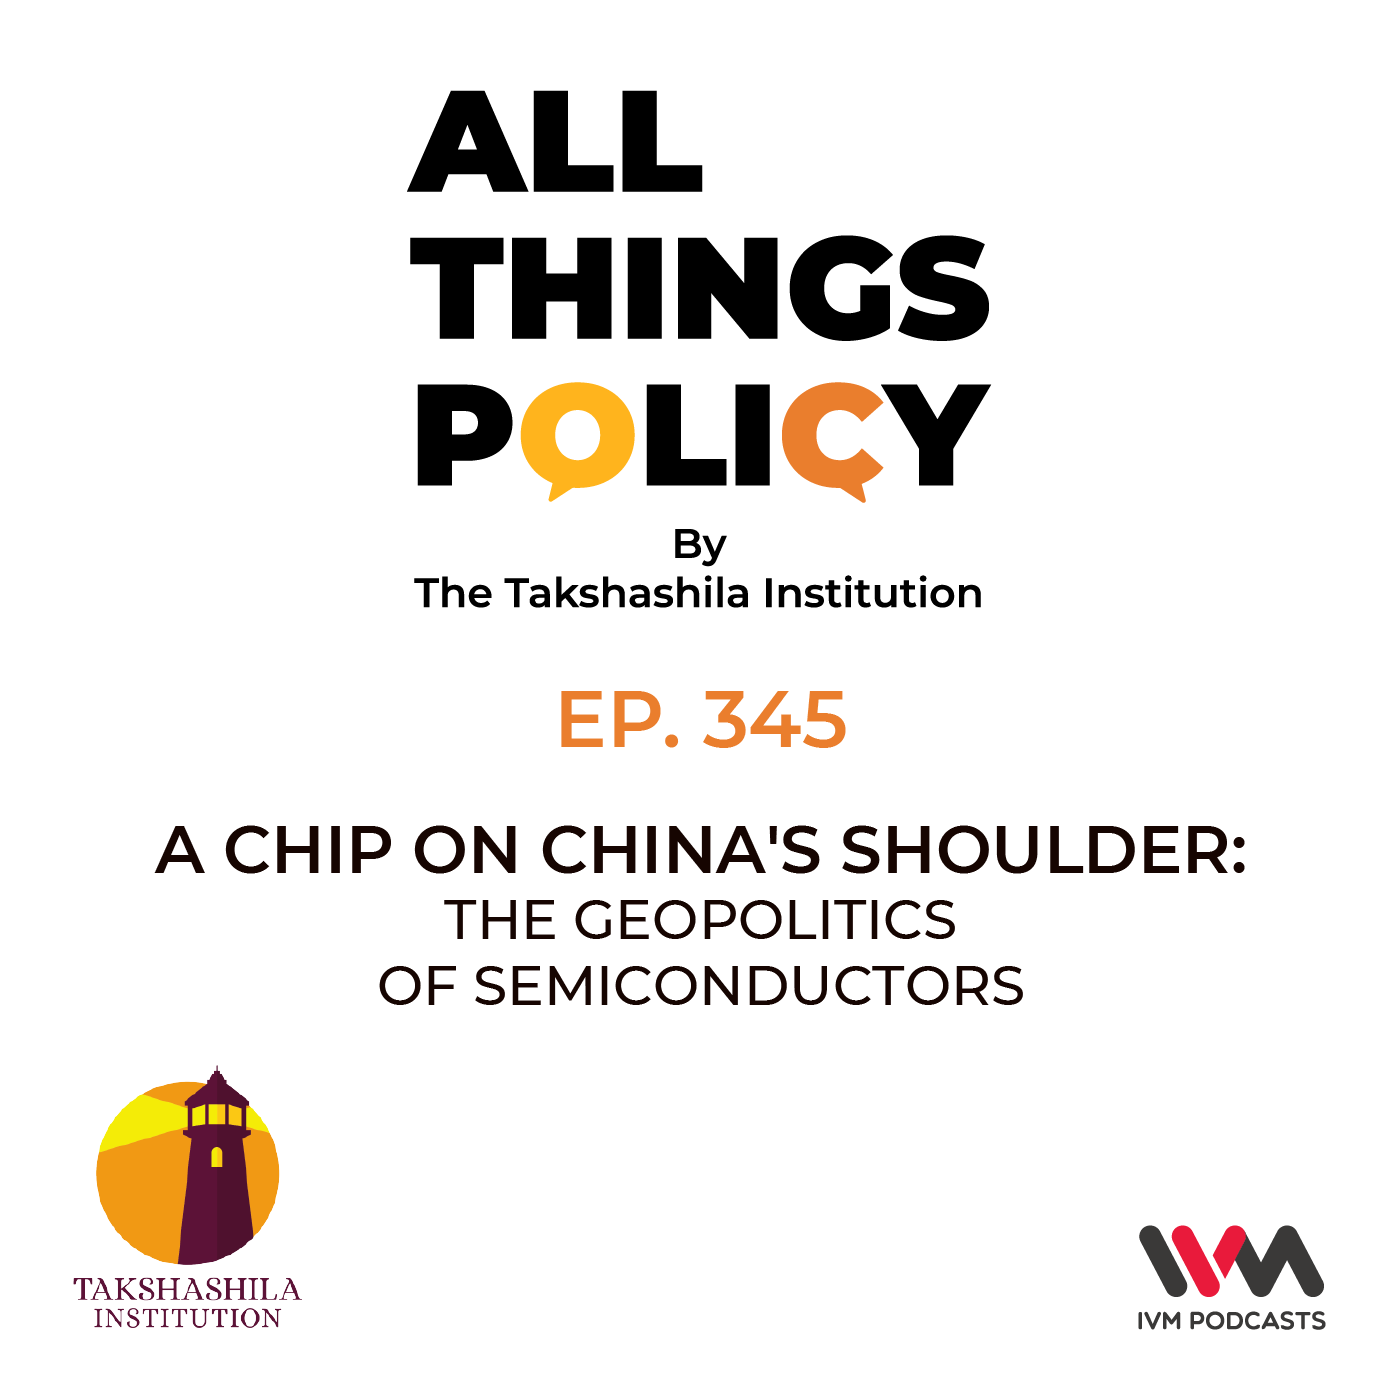 Ep. 345: A Chip on China's Shoulder: The Geopolitics of Semiconductors